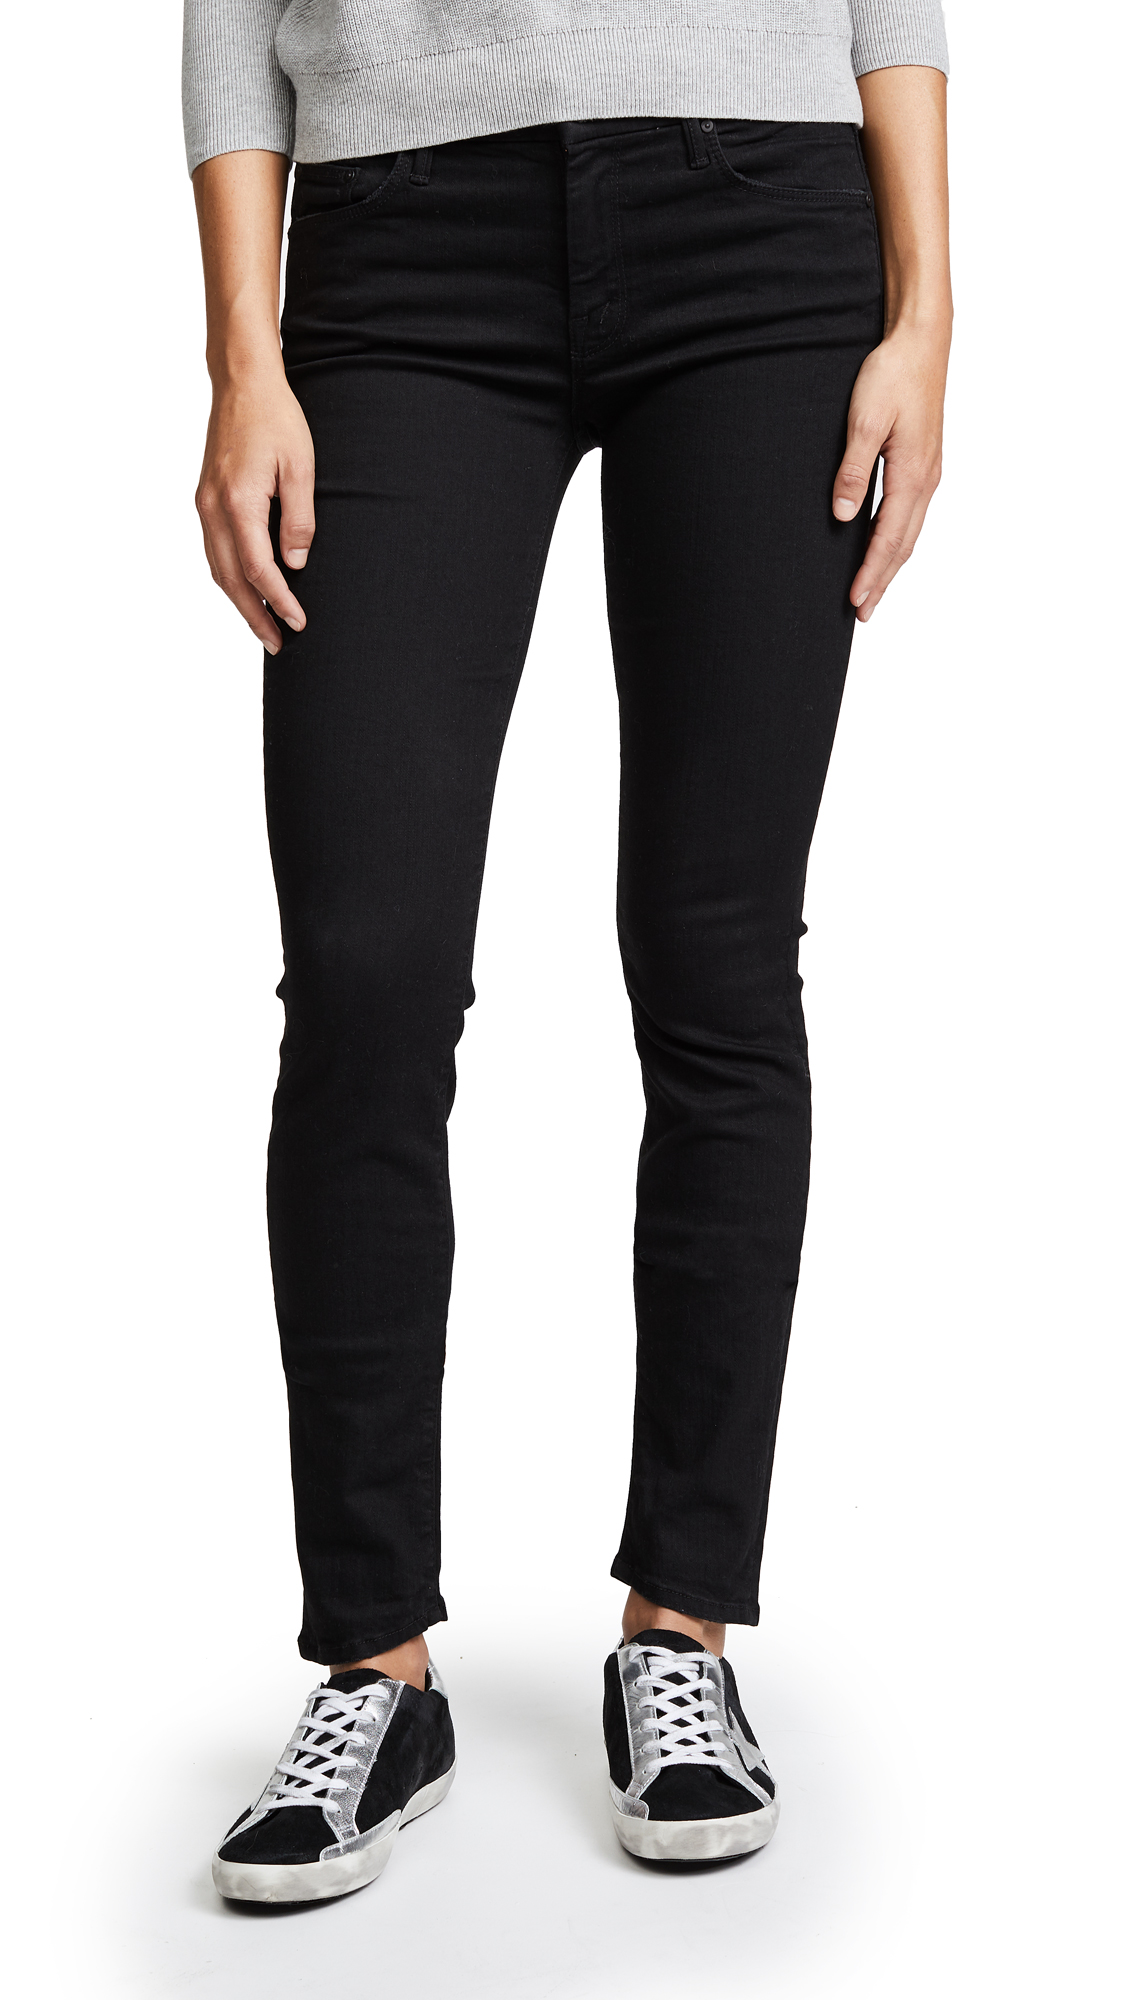 MOTHER The Looker Skinny Jeans - Not Guilty